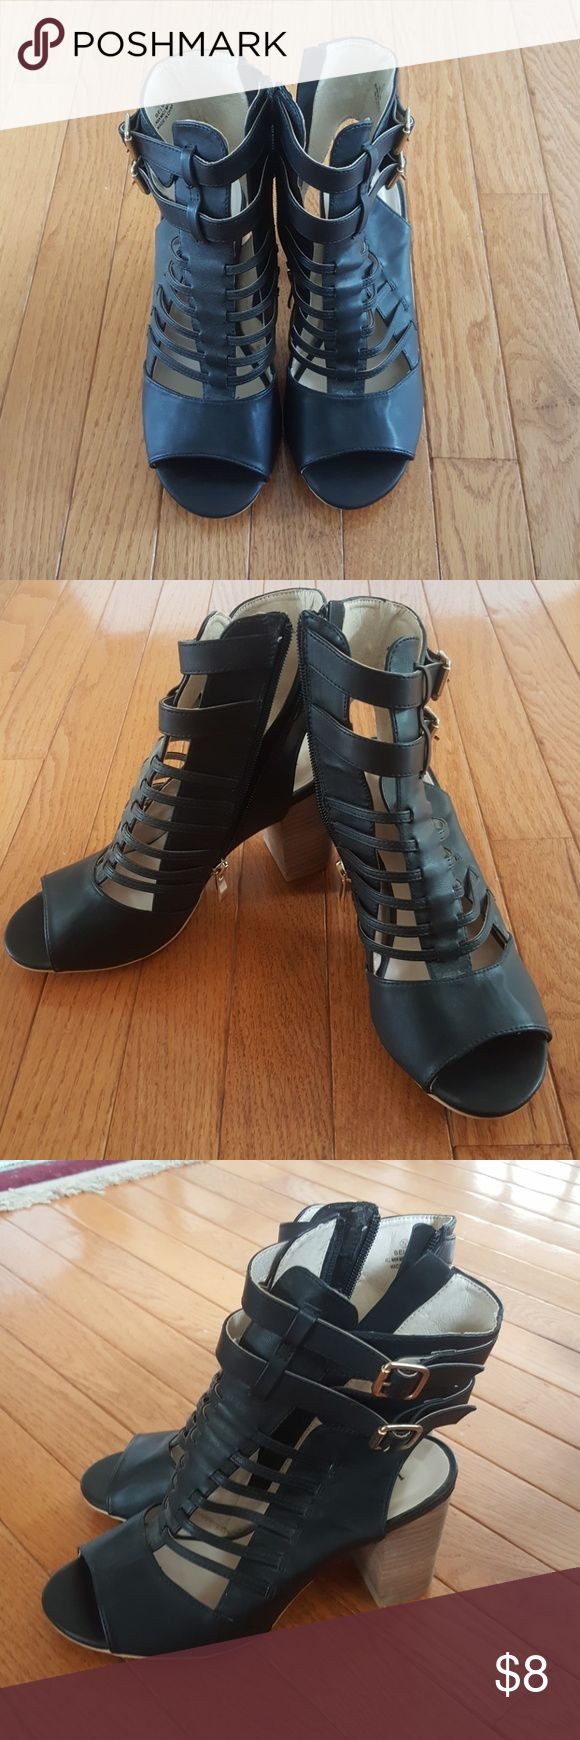 Bucco black leather gladiator sandals/heels Never worn black leather gladiator sandals/heels. Brand new with tag! 3.25 inch heels! Cute with dresses, skirts, skinny jeans... Shoes Sandals